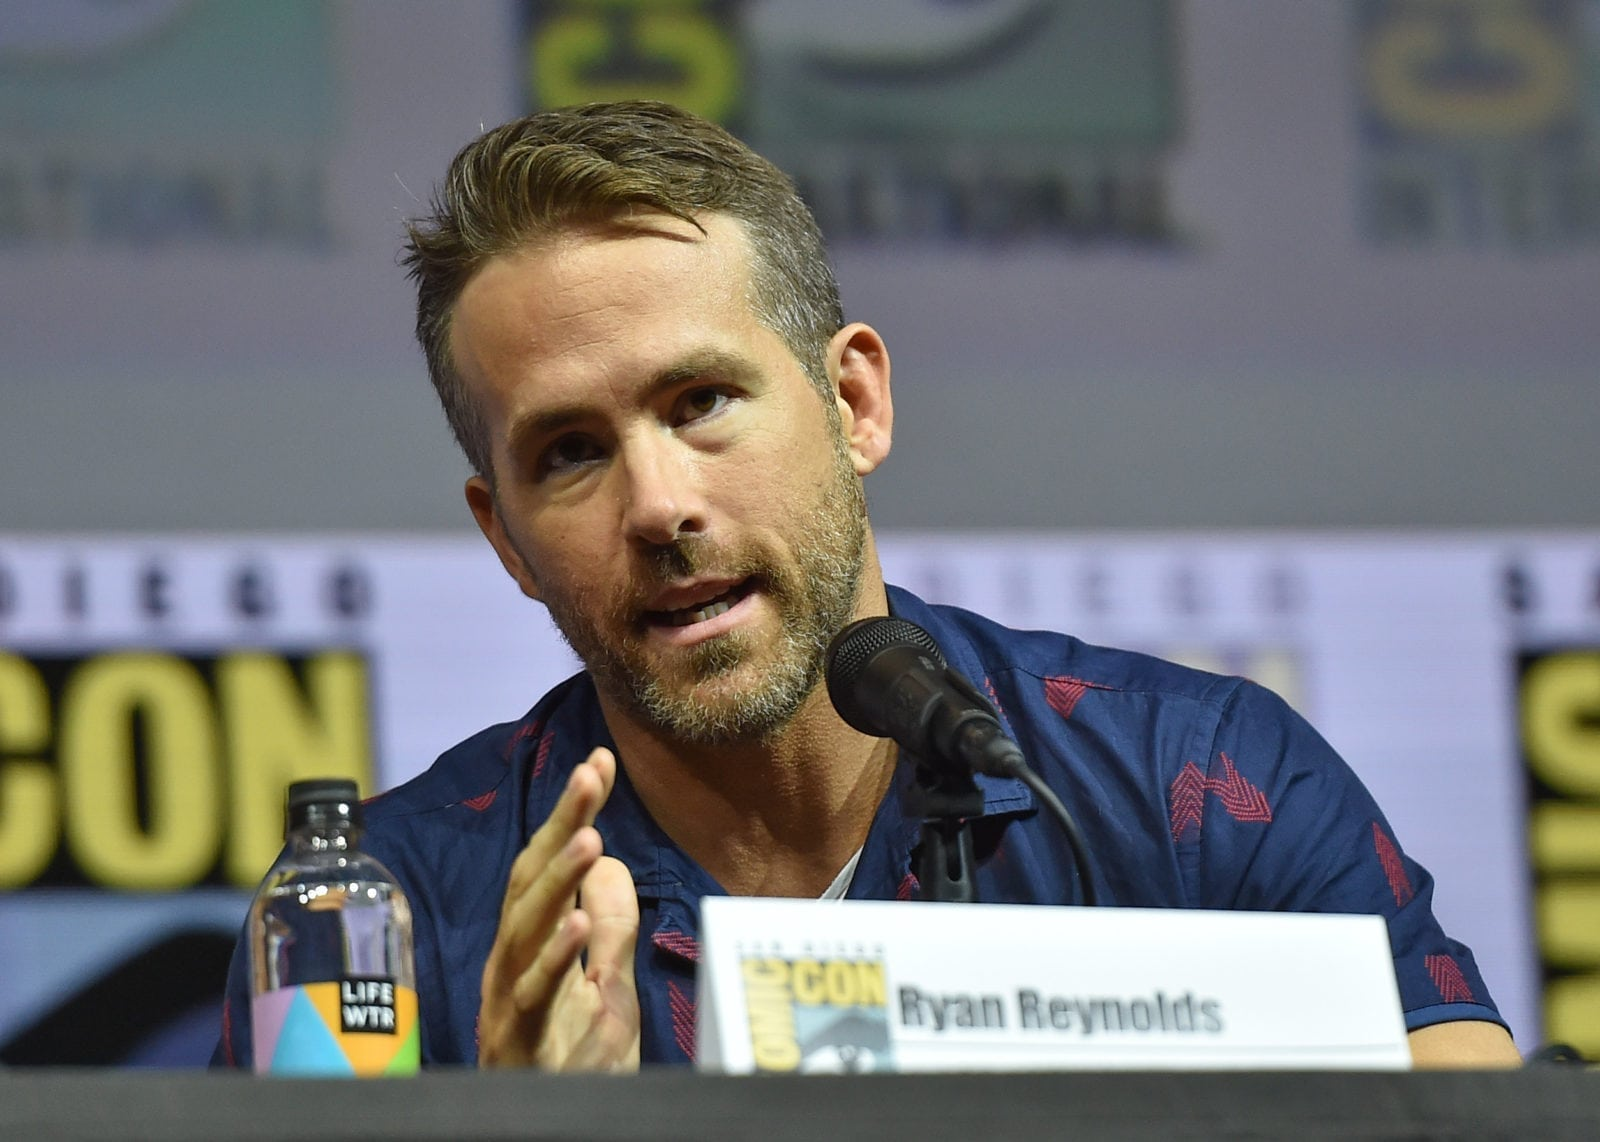 Ryan Reynolds Gay Sex